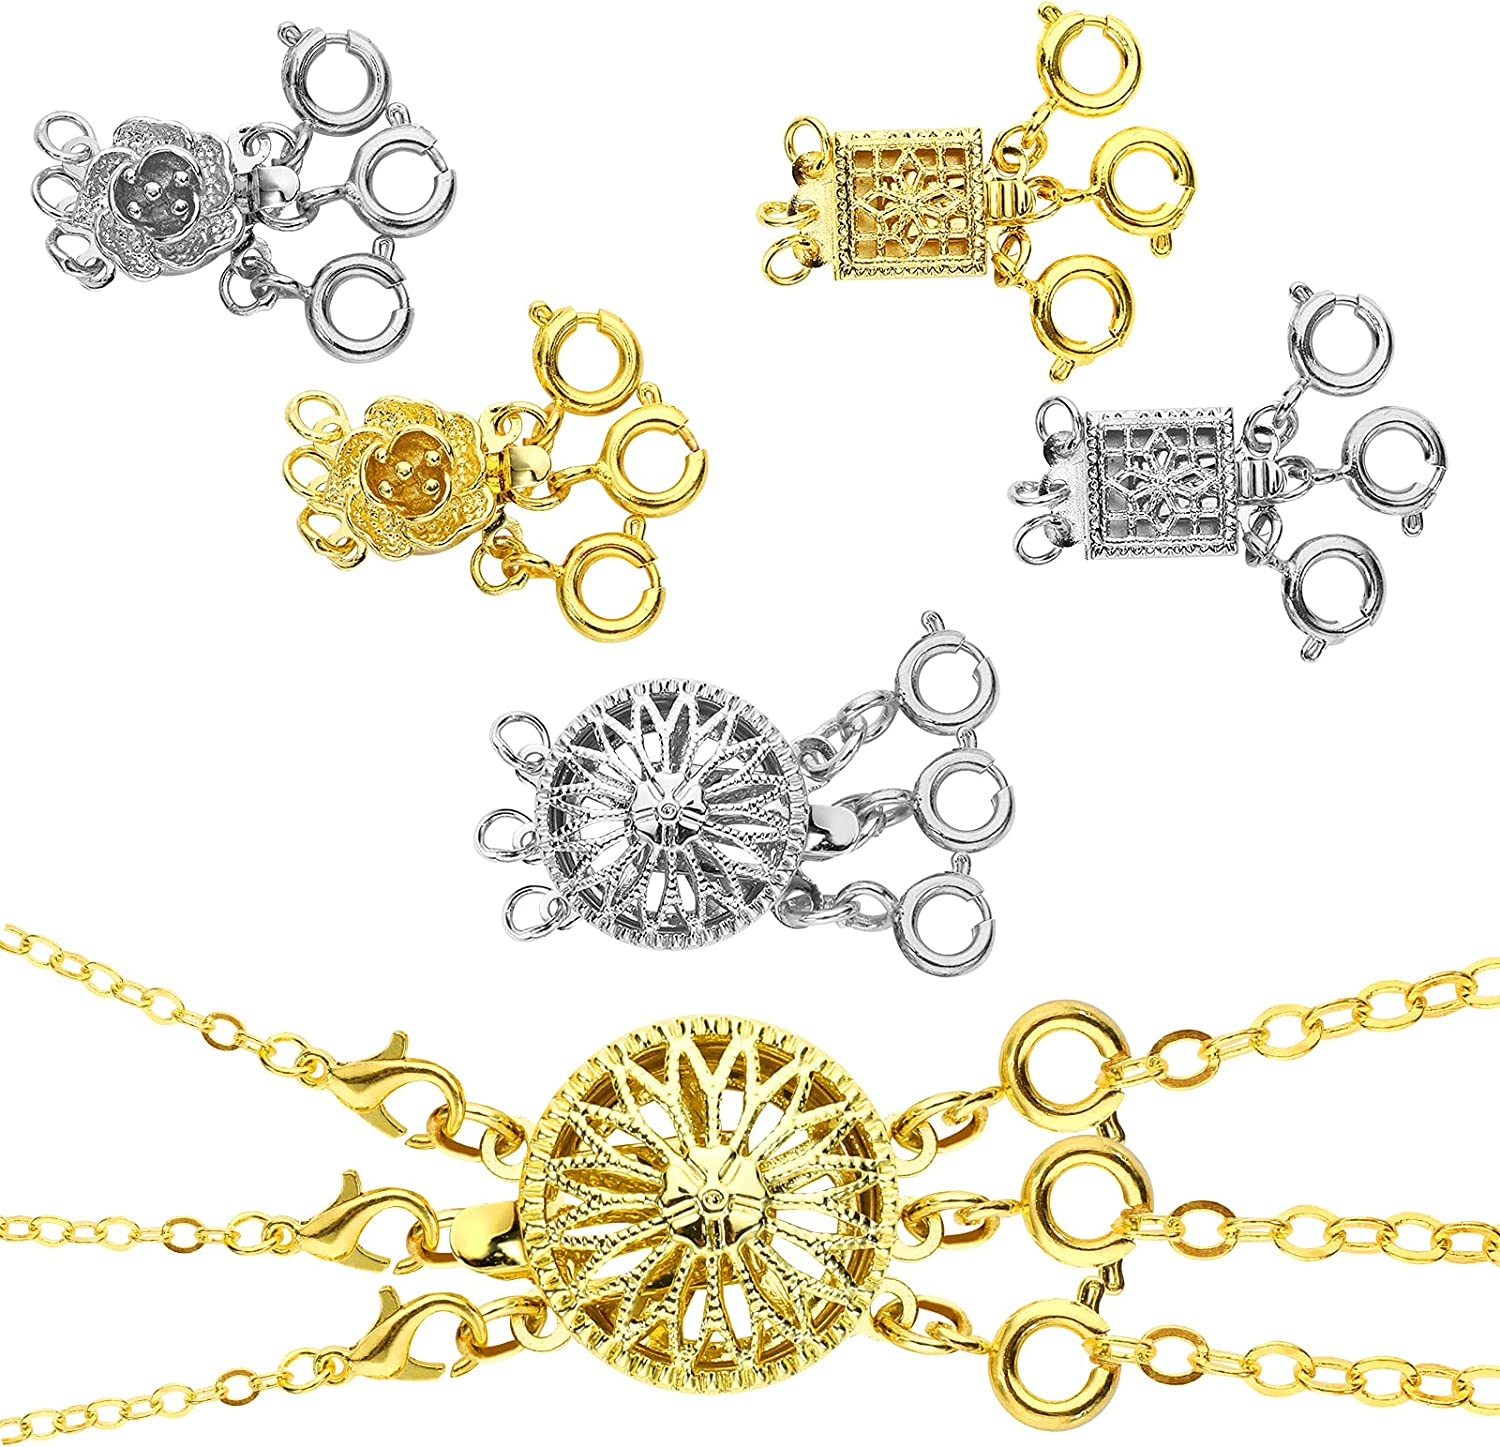 PAFUWEI 6 Over item handling lowest price Pcs Necklace Layering Clasps 3 Clasp Layered